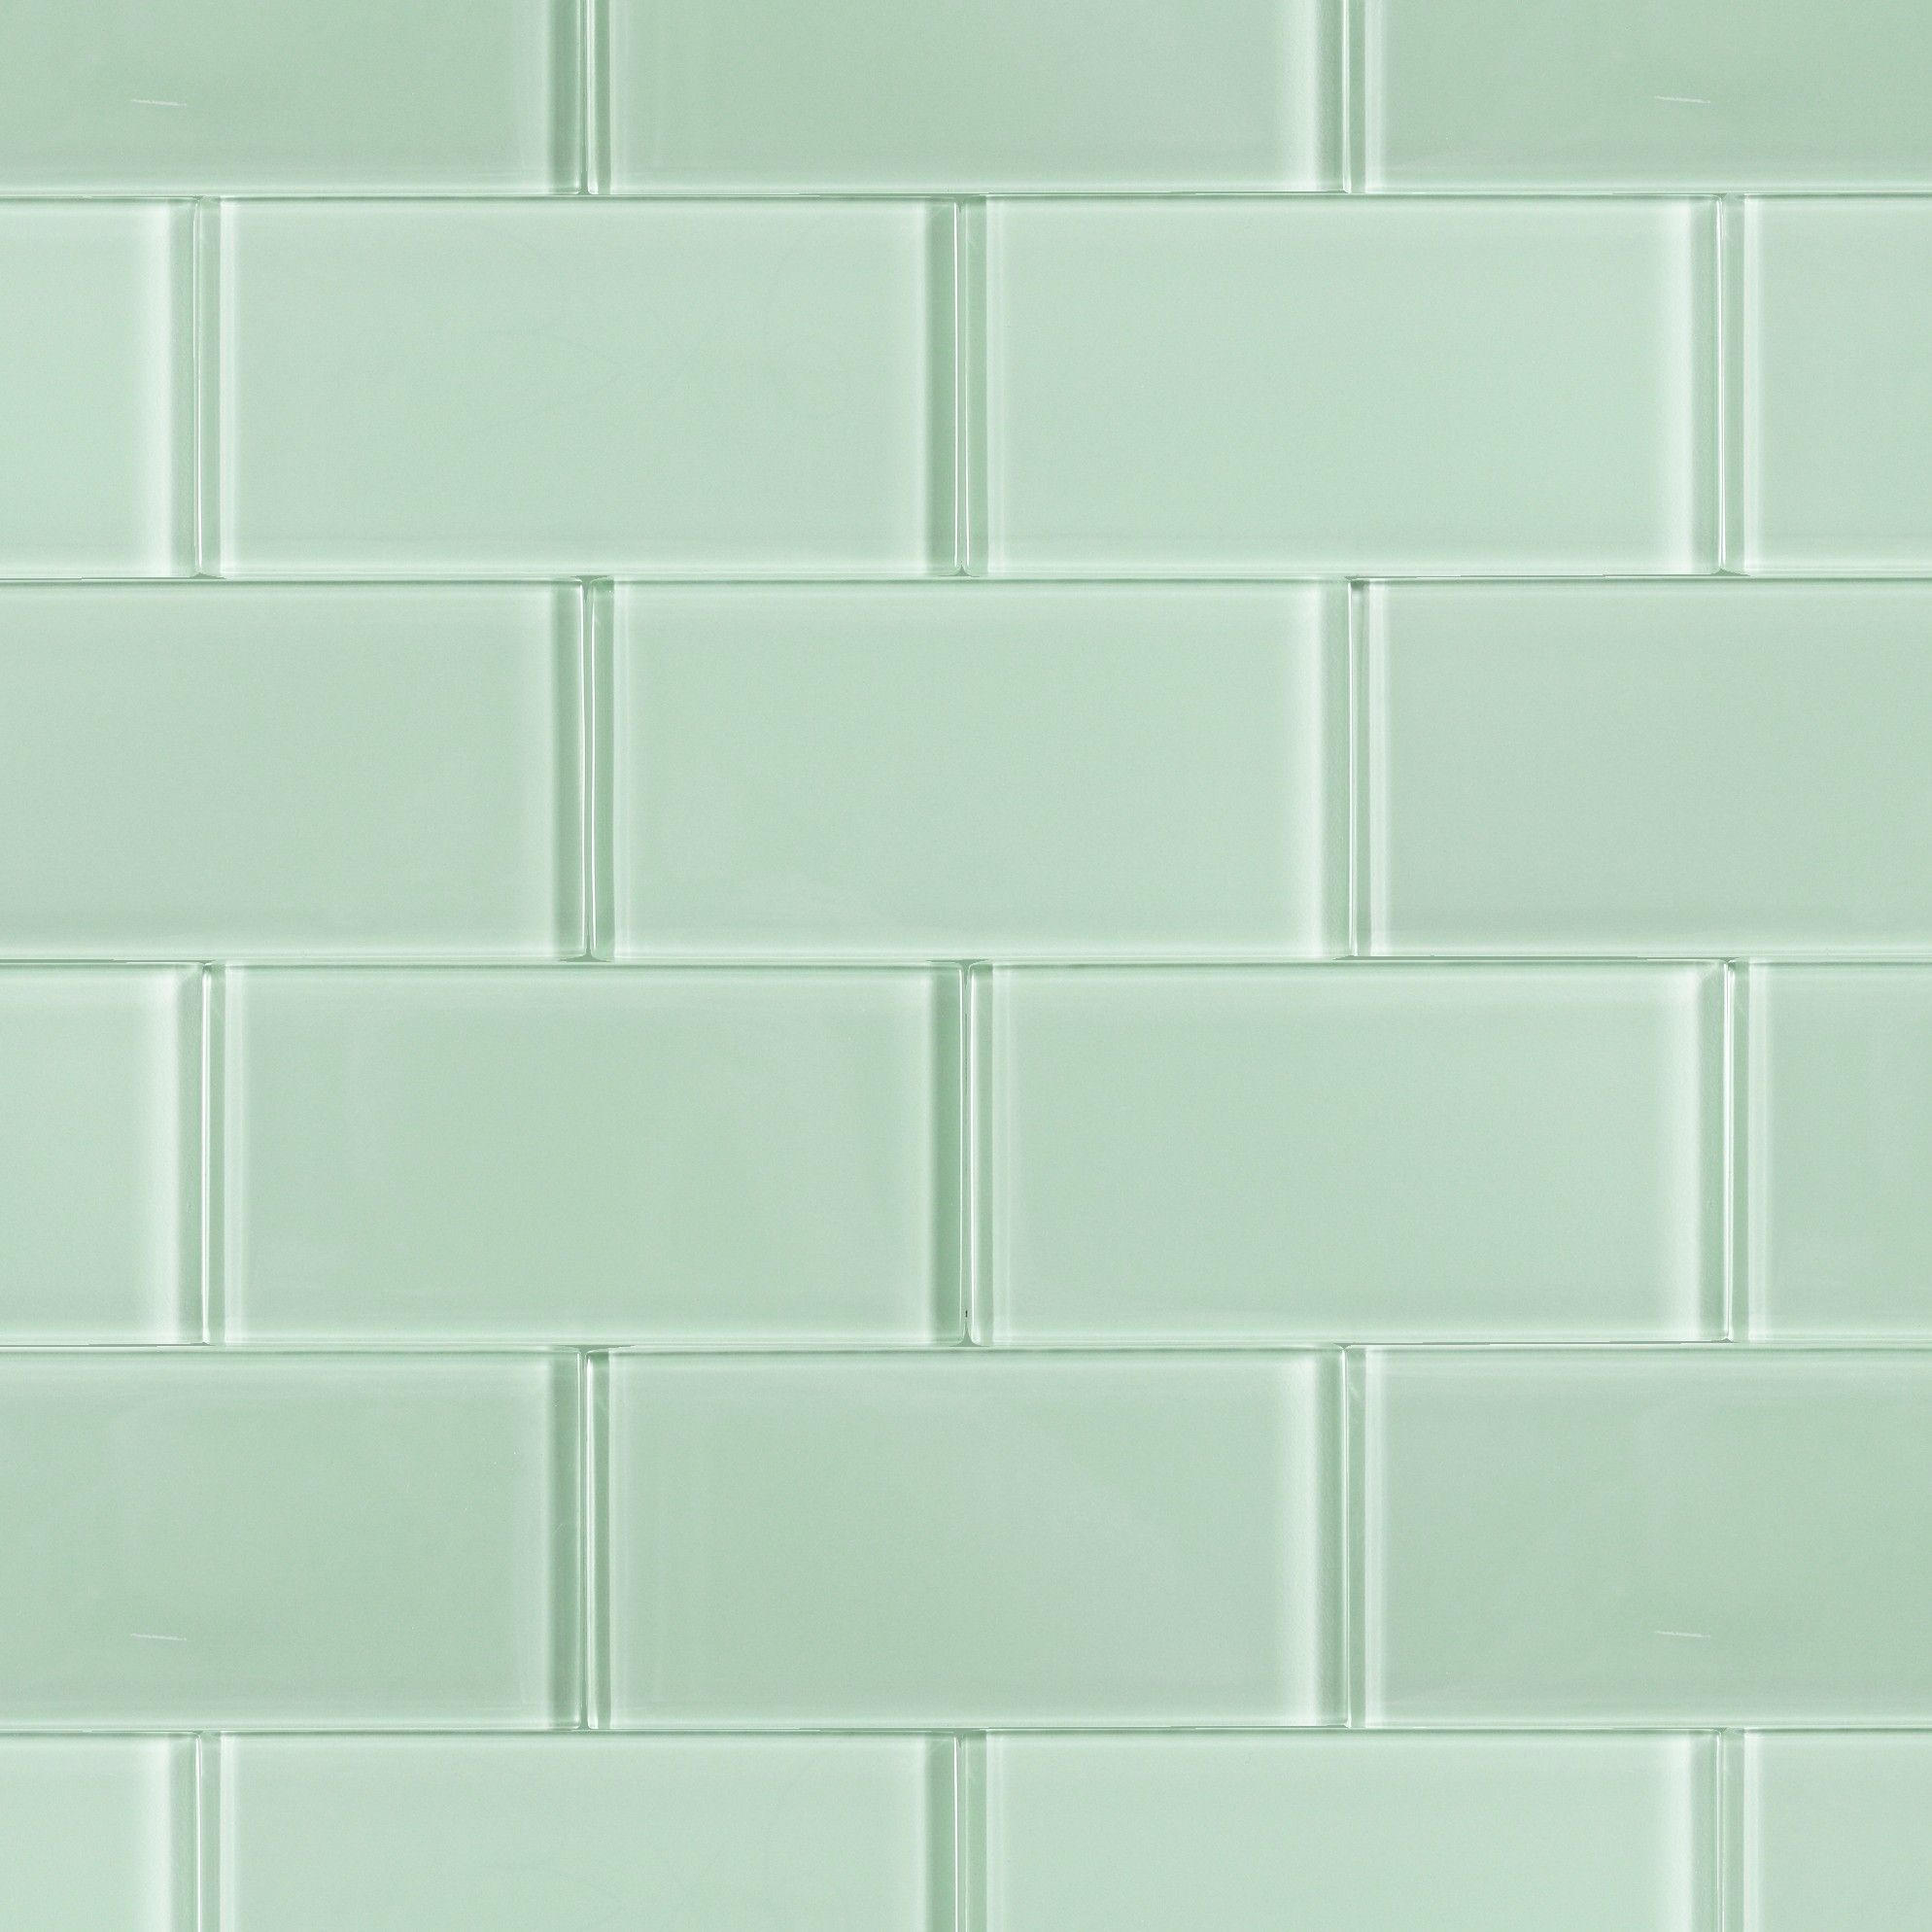 35 Seafoam Green Bathroom Tile Ideas And Pictures: It's Between This And The AKDO Icelandic Blue